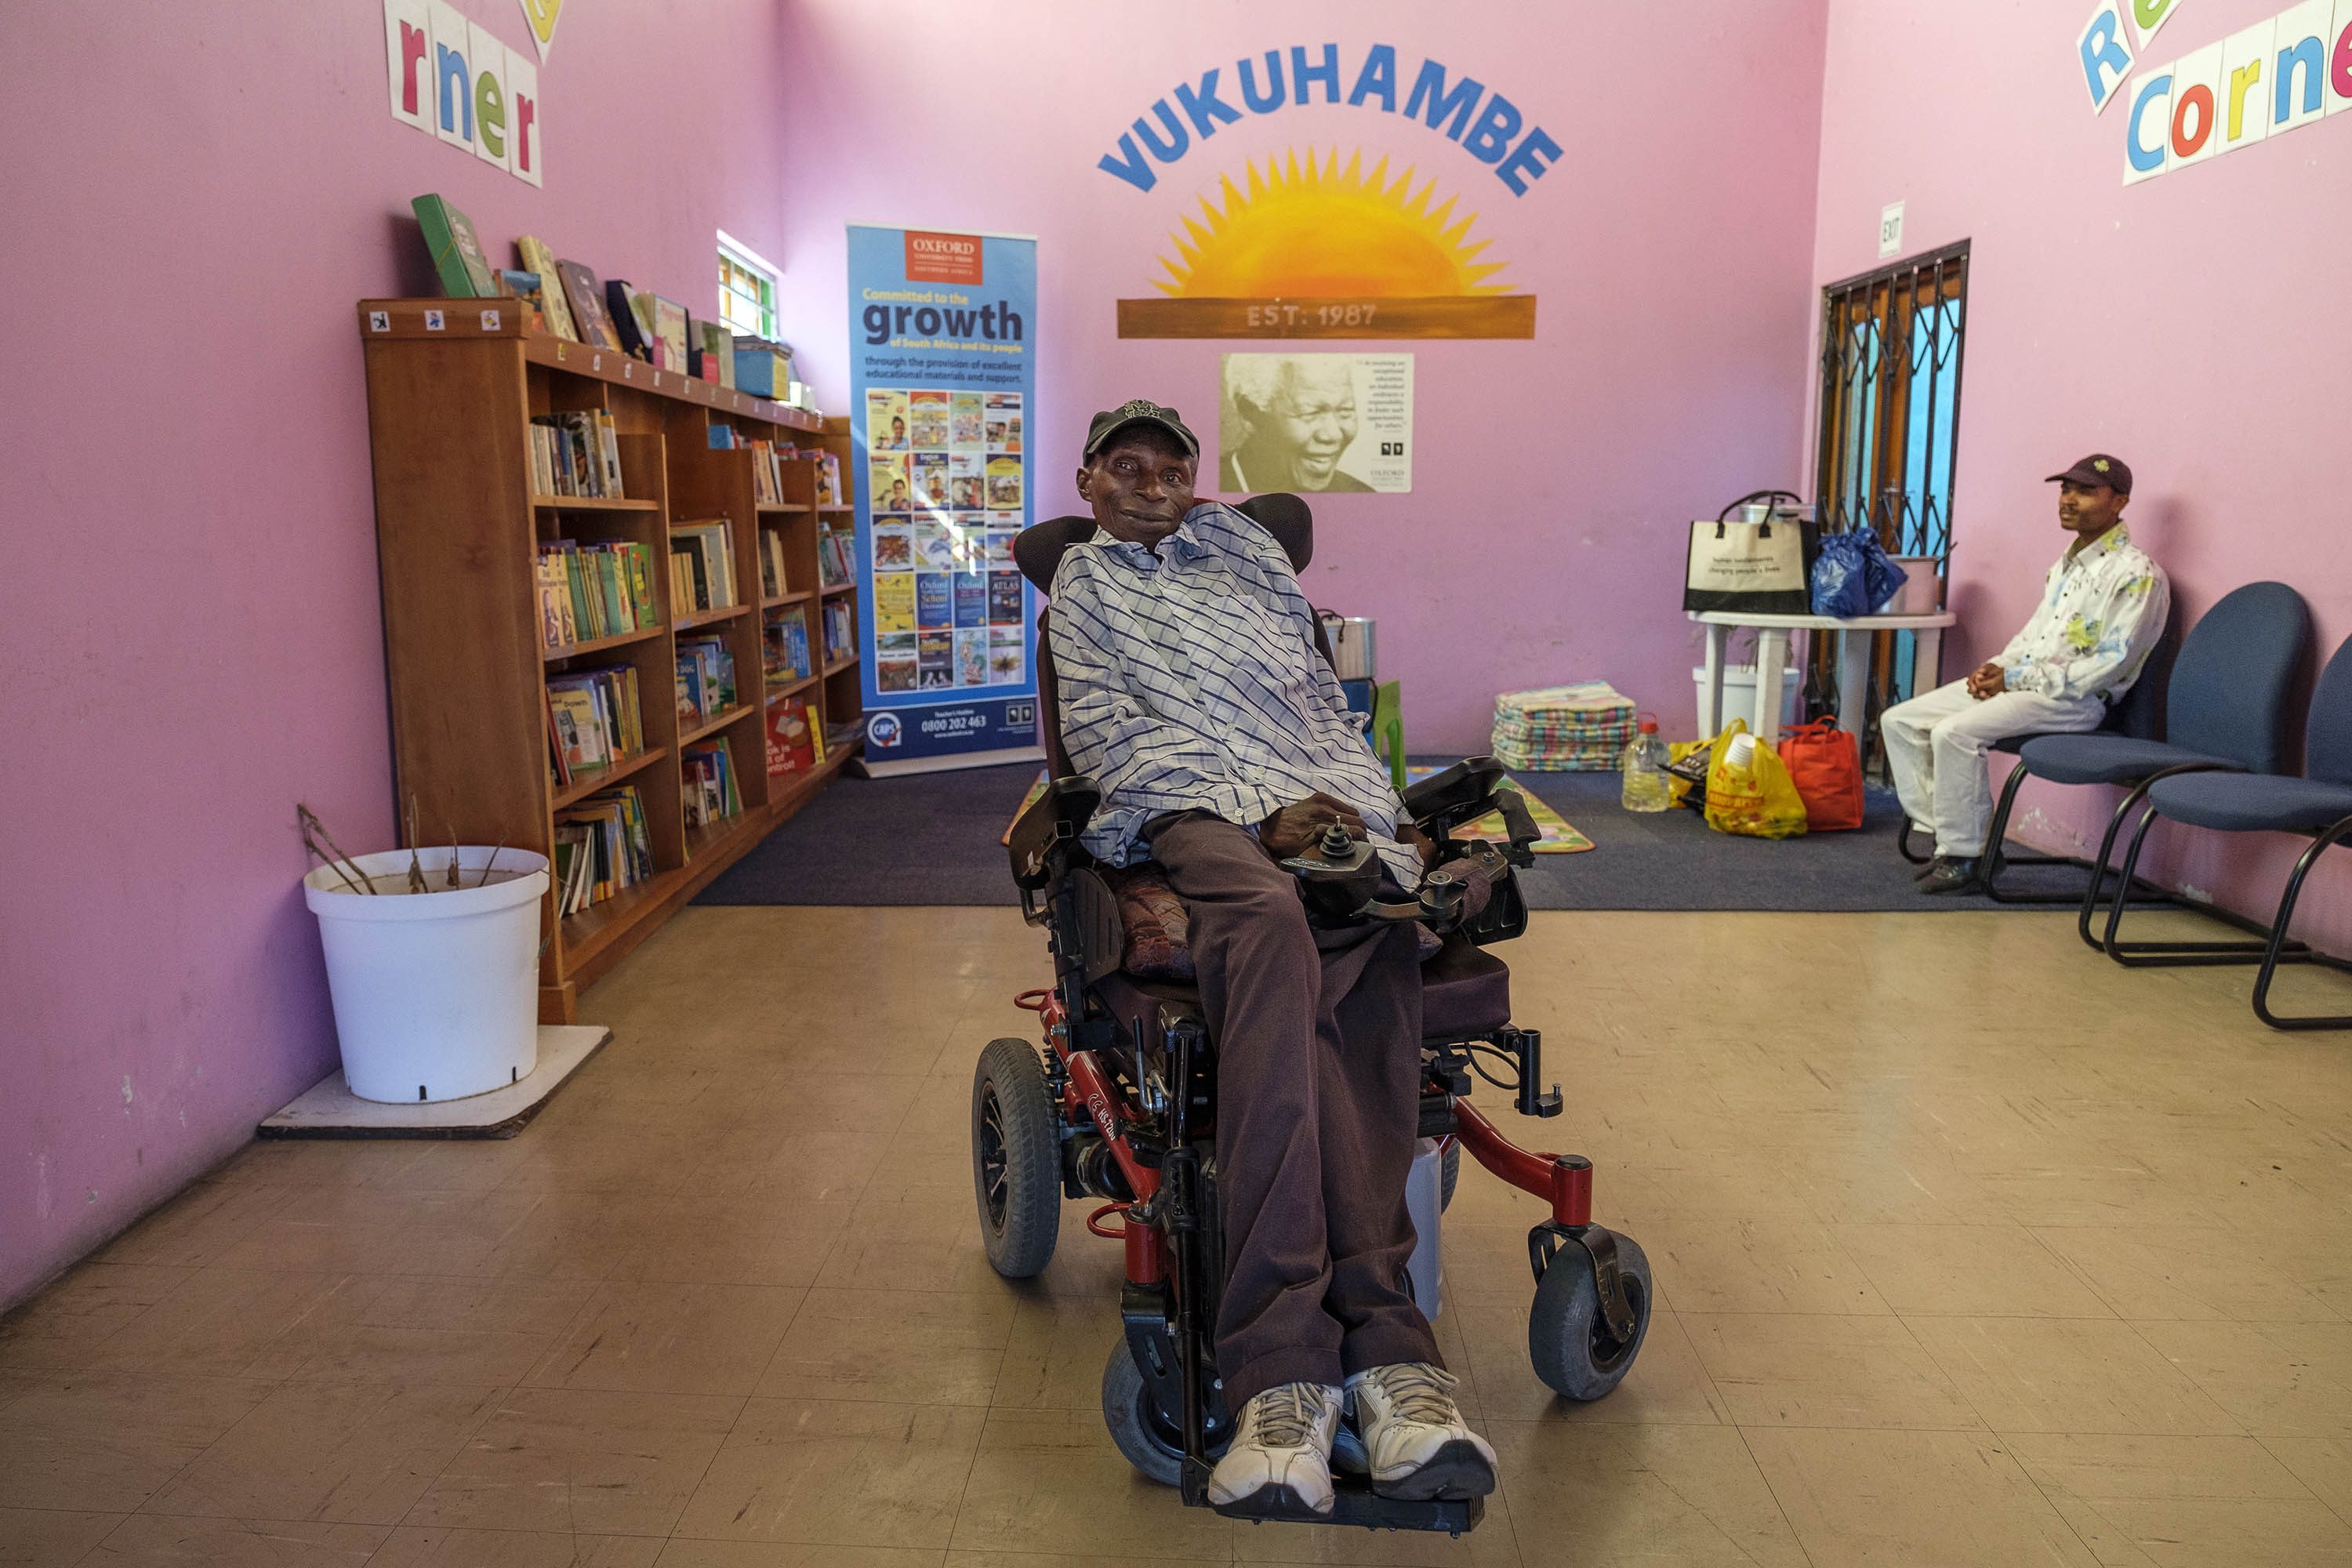 22 November 2019: Thozamile Mciki at the Vukuhambe Disabled Centre in Gugulethu, Cape Town, where he is the manager.